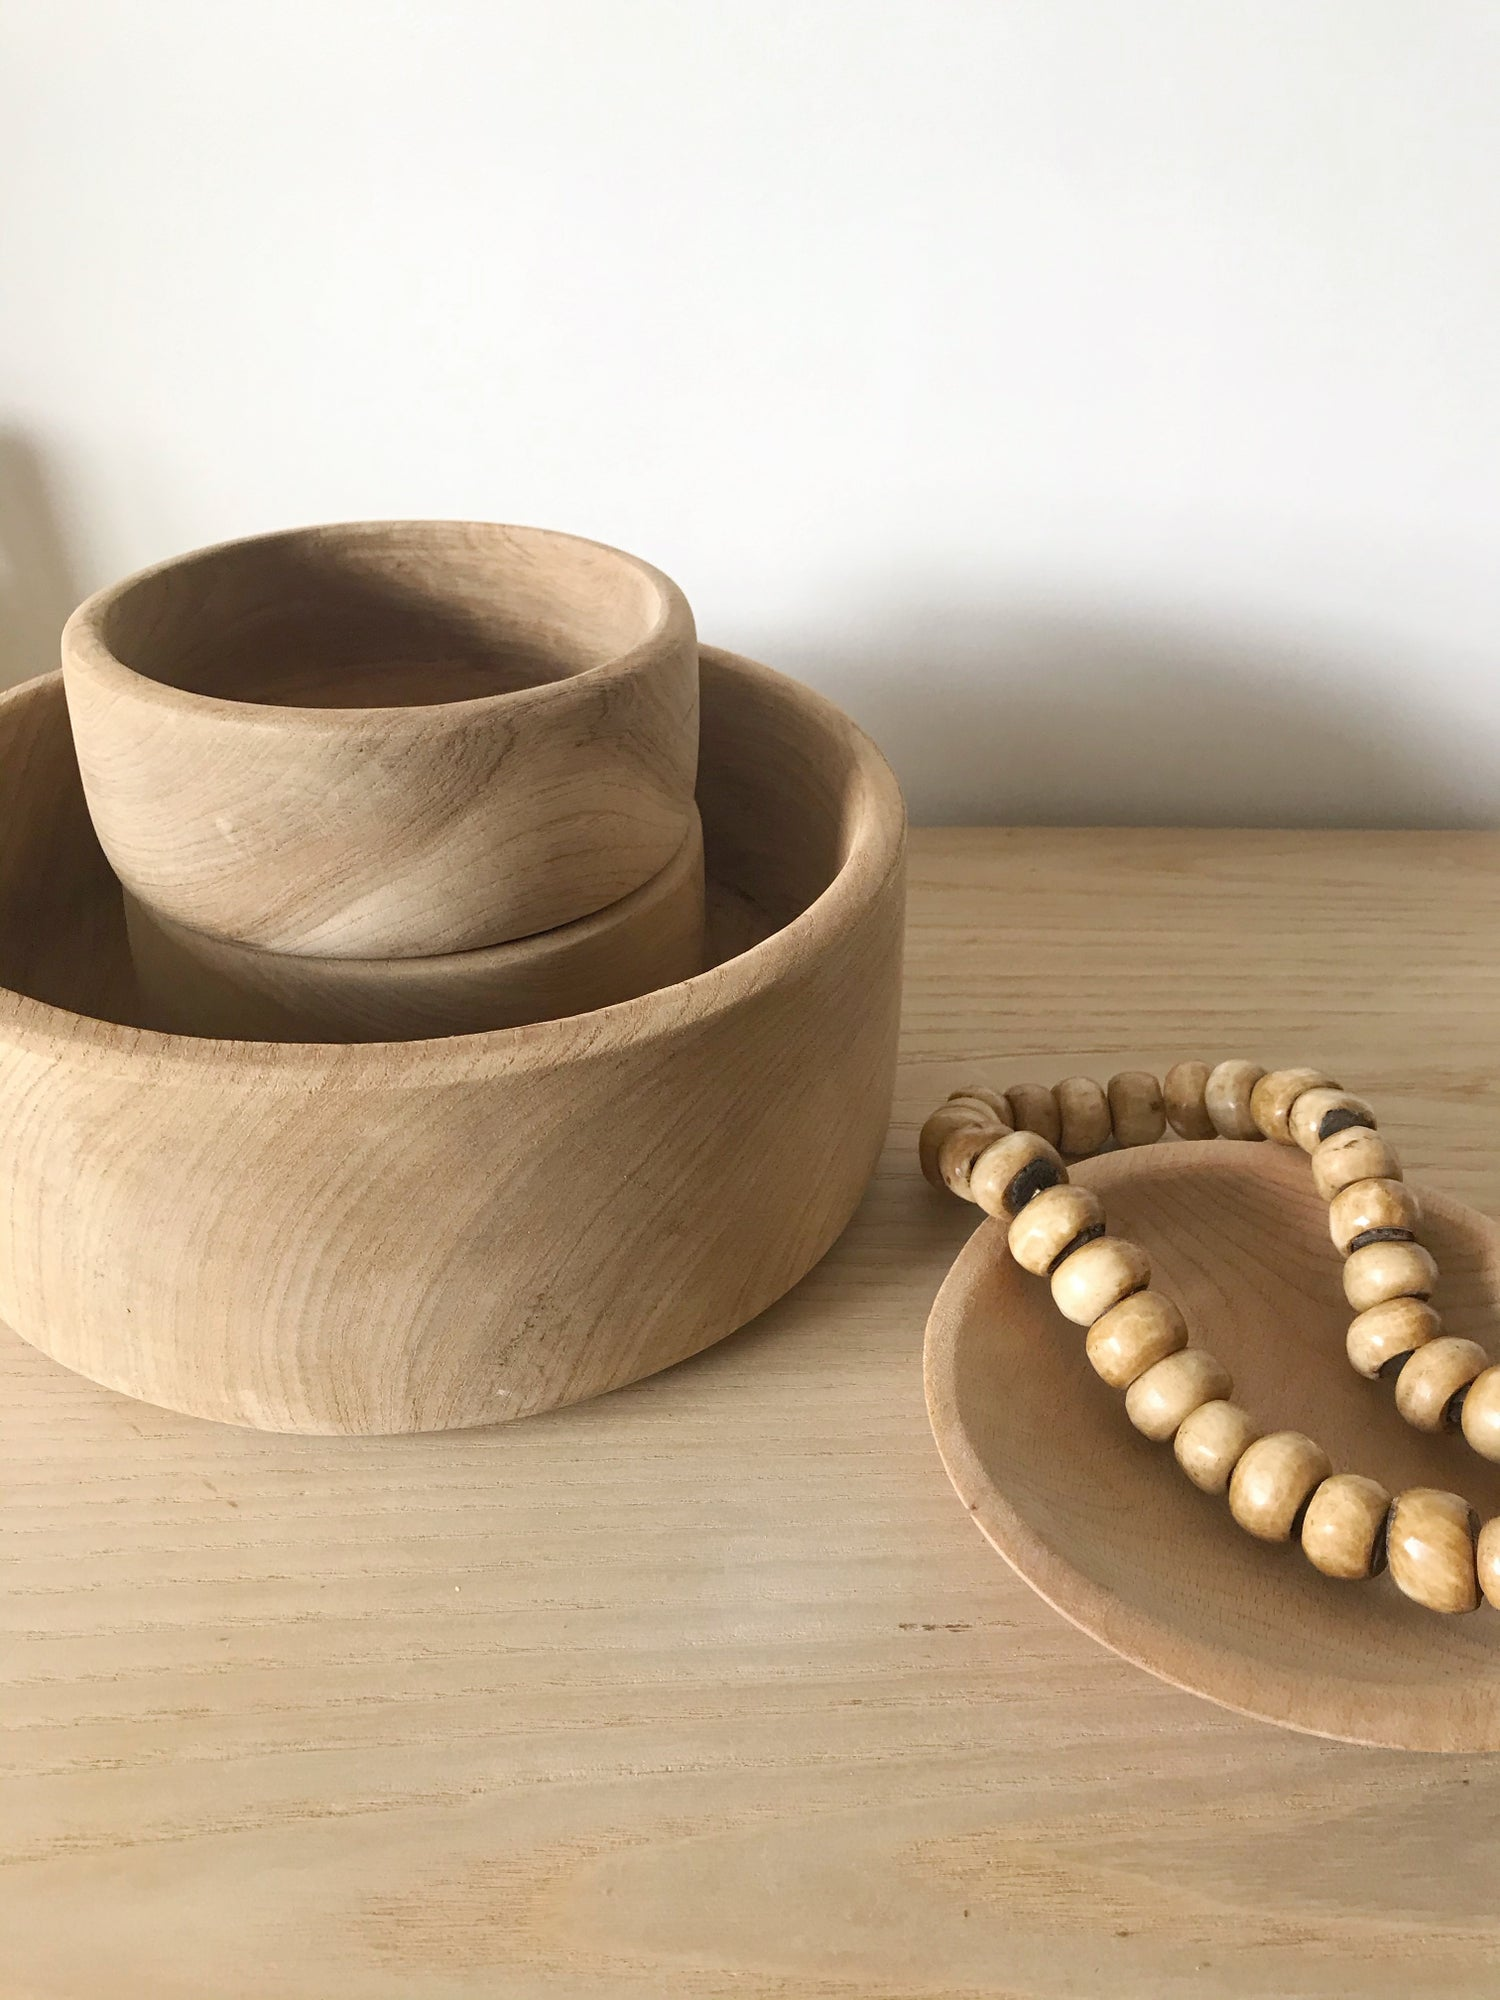 Image of Large Raw Wooden Bowl #122